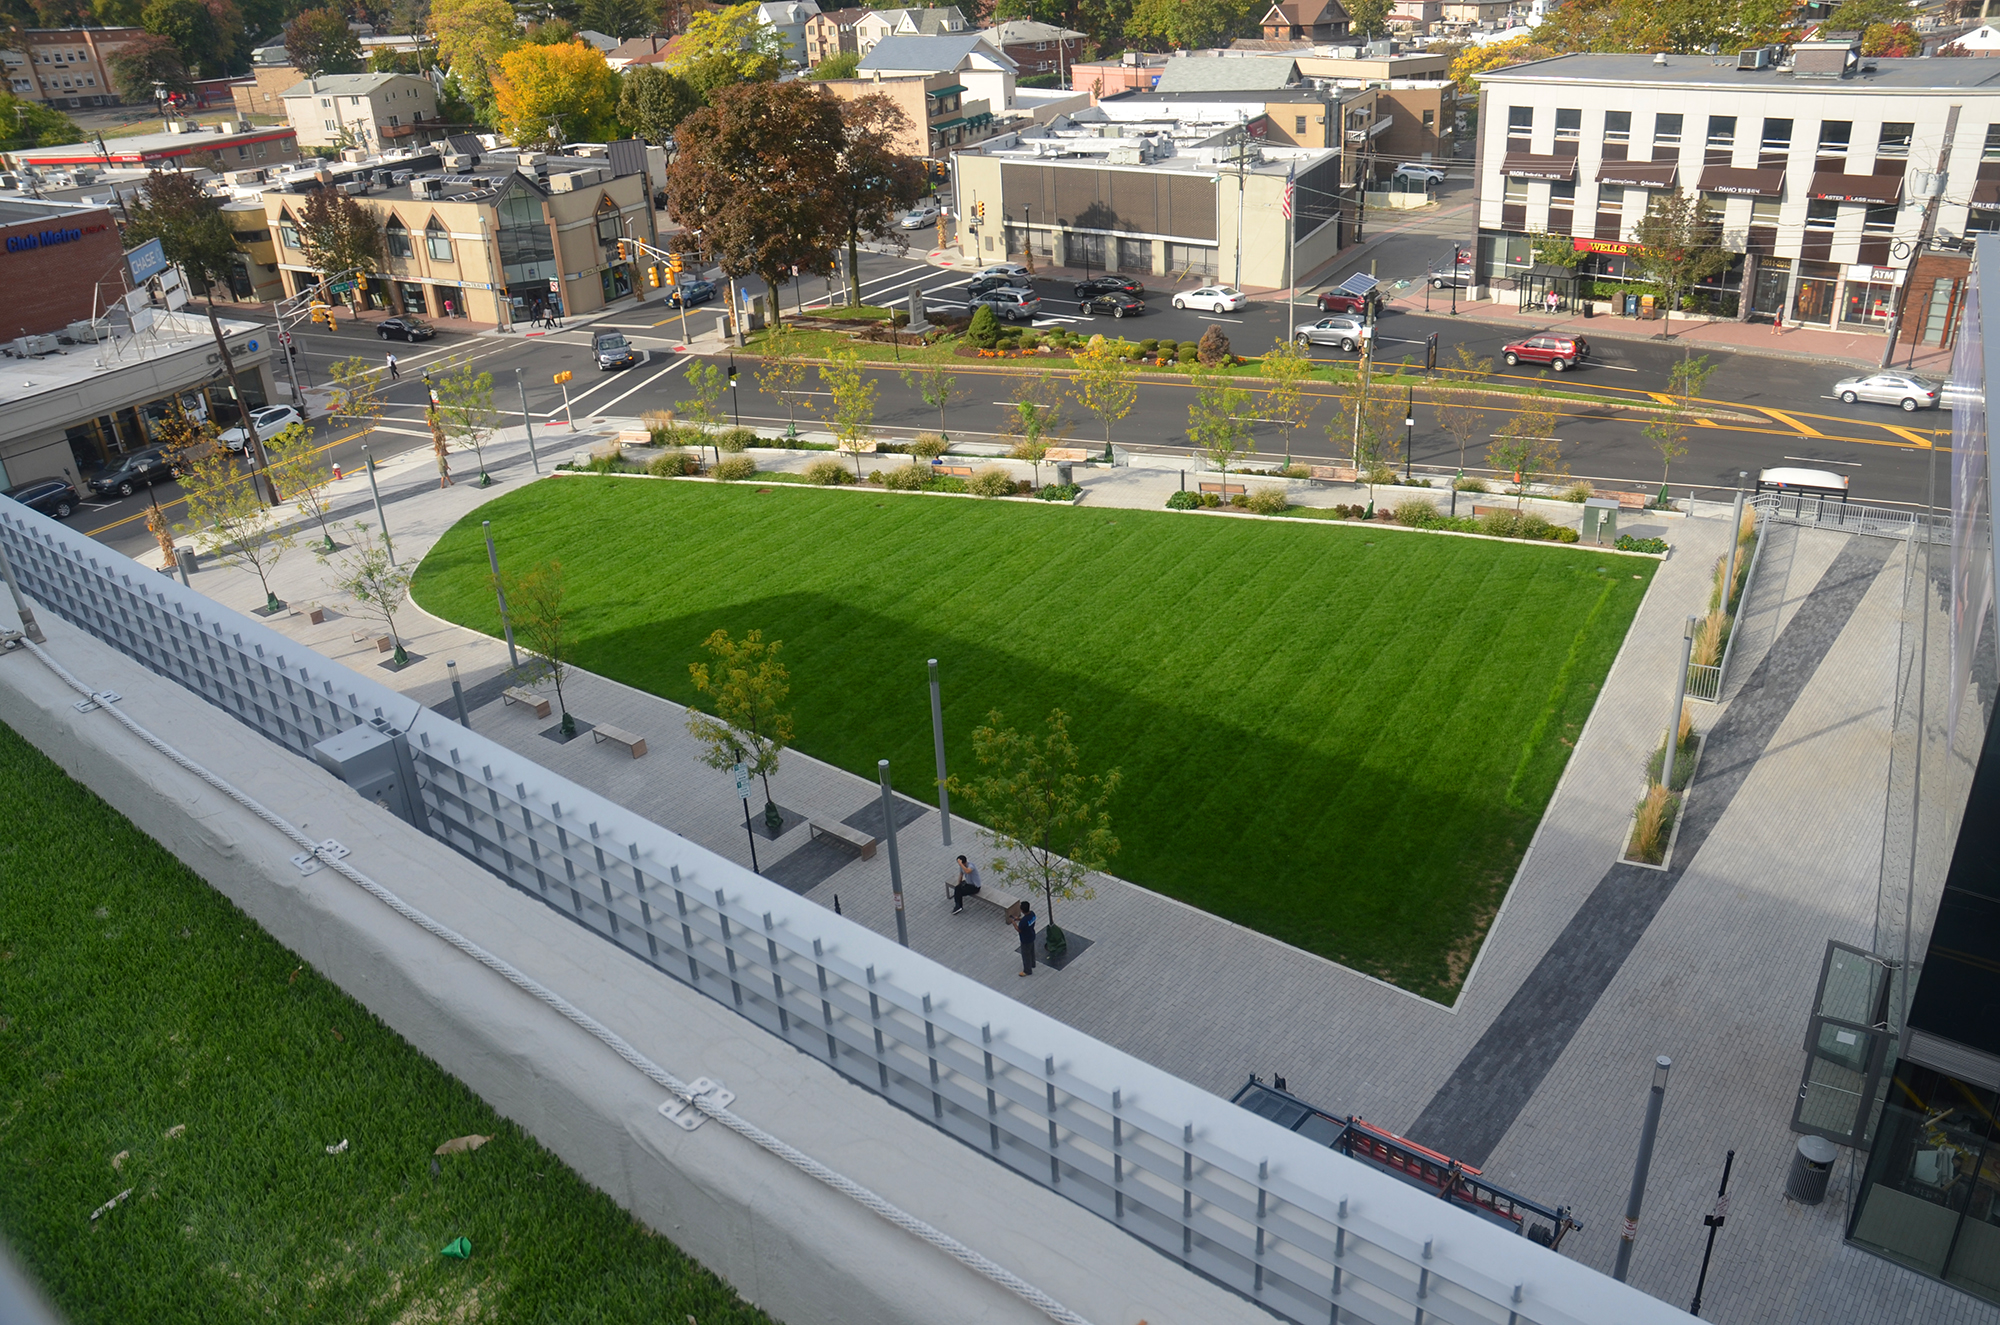 View of the public green space at Hudson Lights